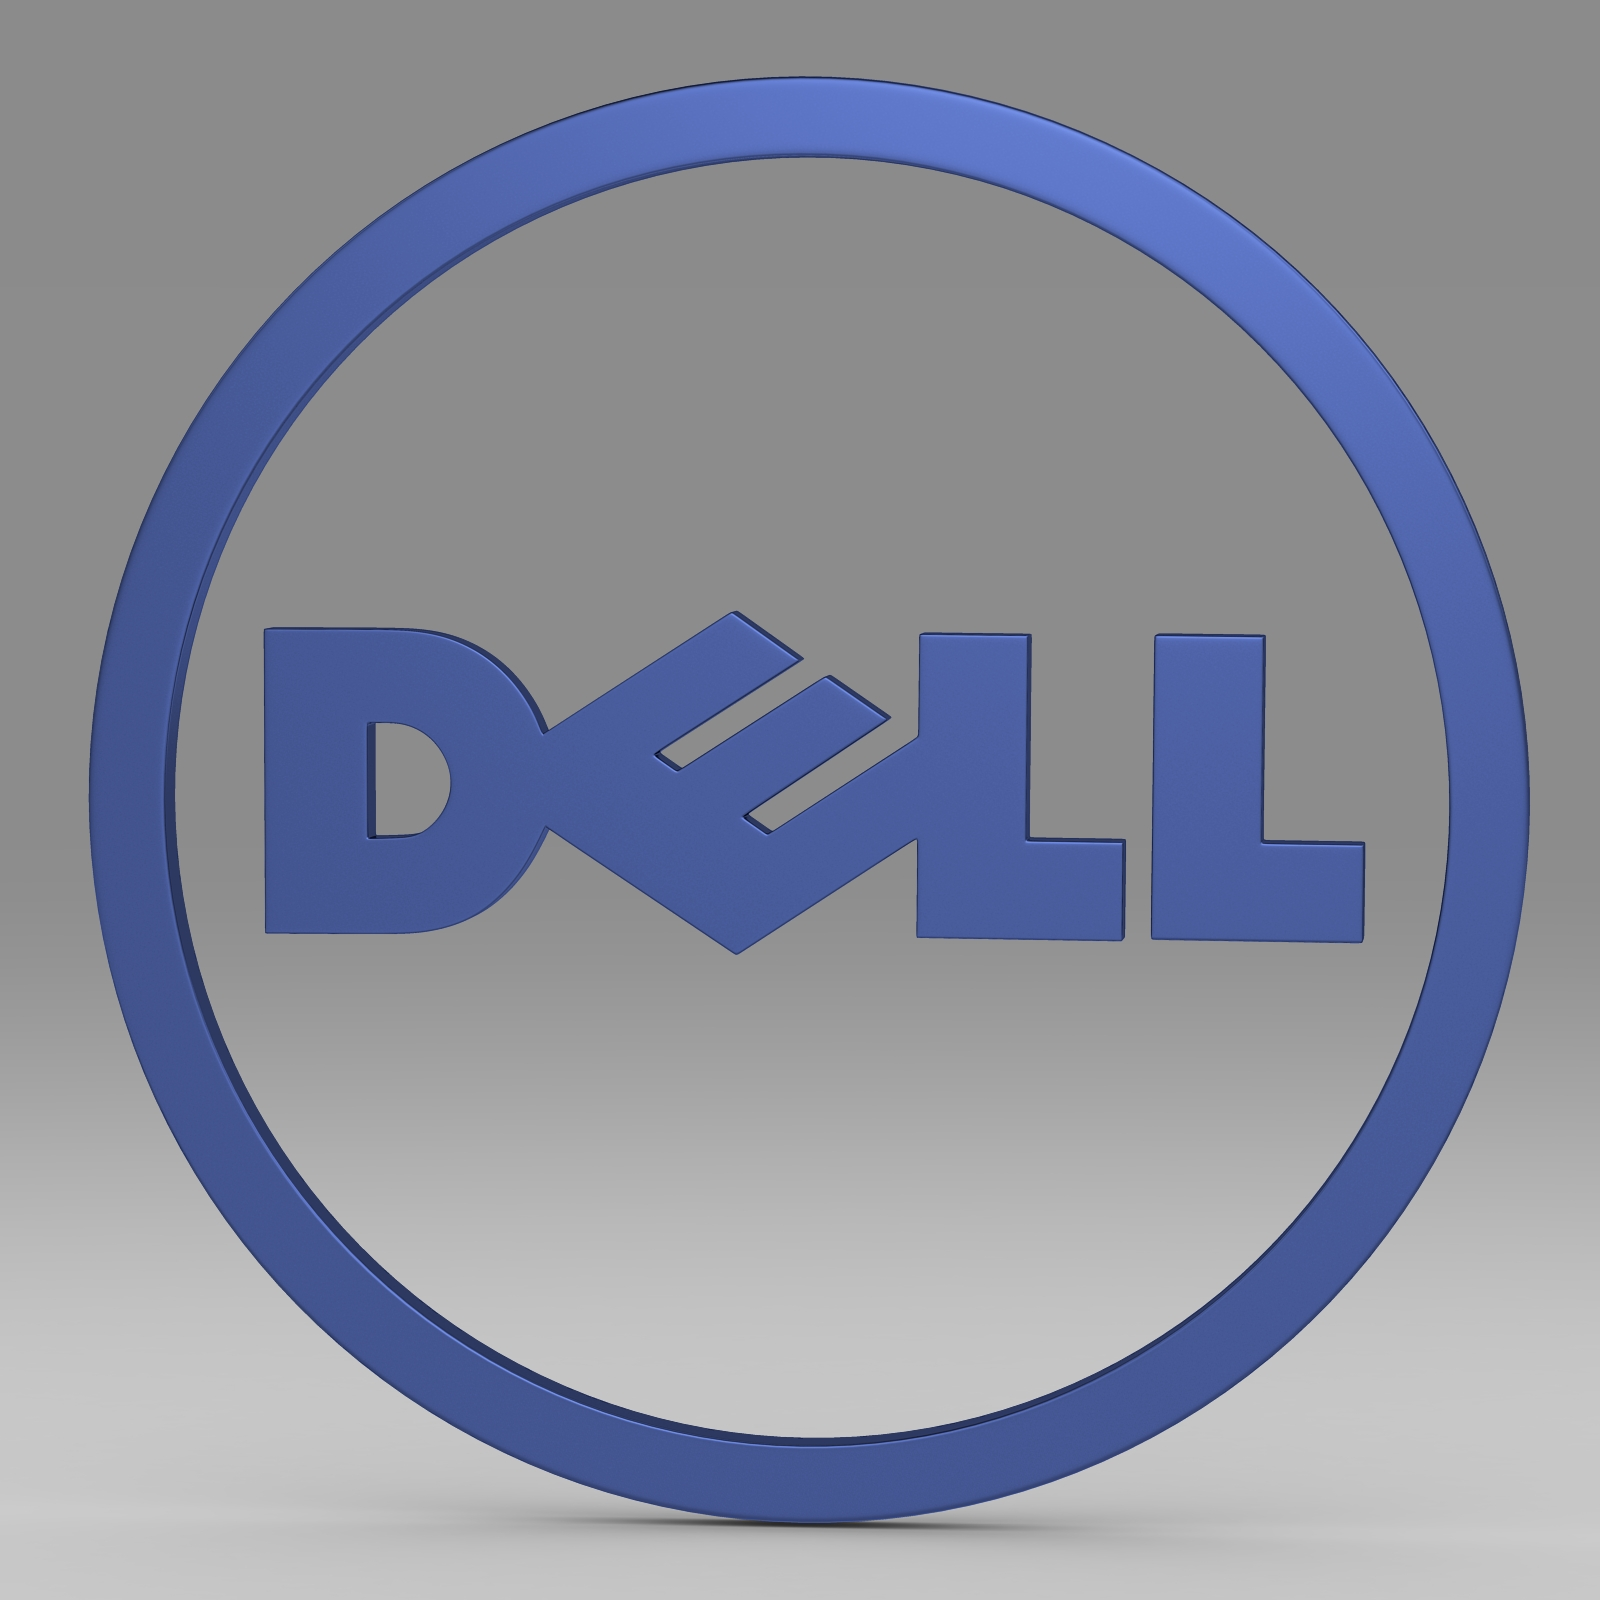 dell logo 2 3d model 3ds fbx c4d lwo ma mb hrc xsi  obj 223626